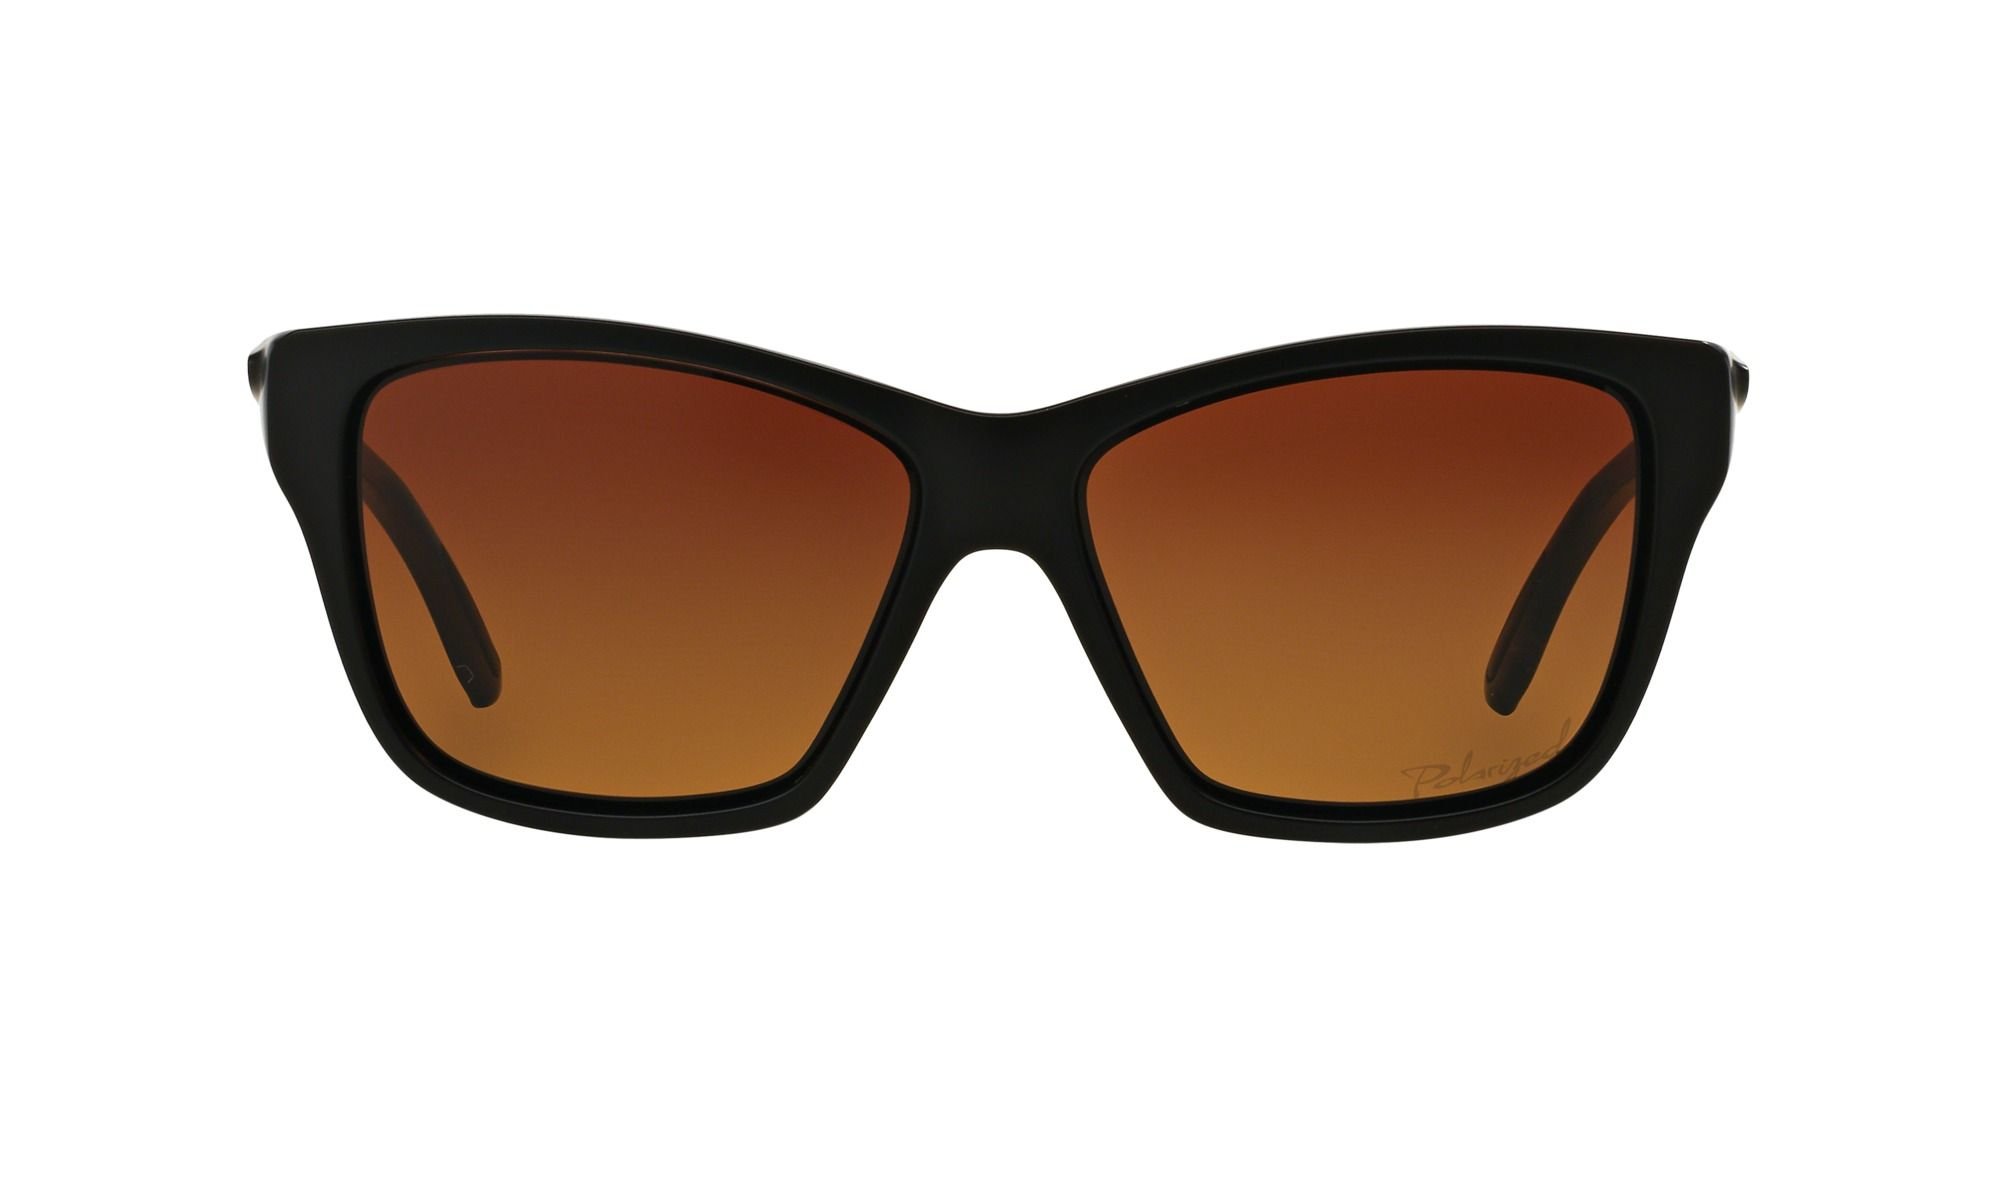 6b2c042794 Buy Oakley sunglasses for Womens Hold On with Crystal Black frame and CHROME  IRIDIUM lenses. Discover more on Oakley CA Store Online.